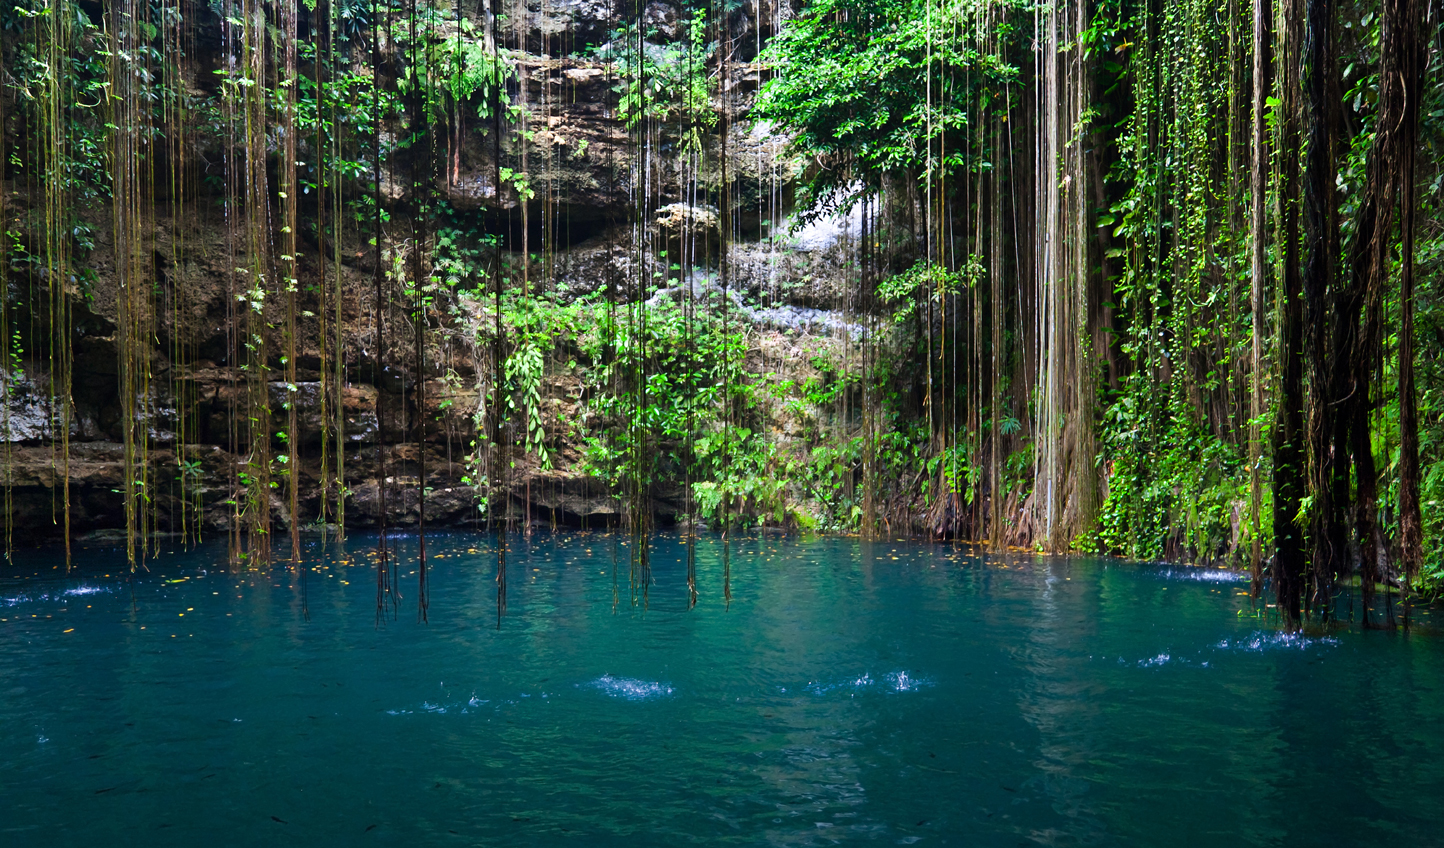 Take a dip in the azure waters of Cenote Ik-Kil